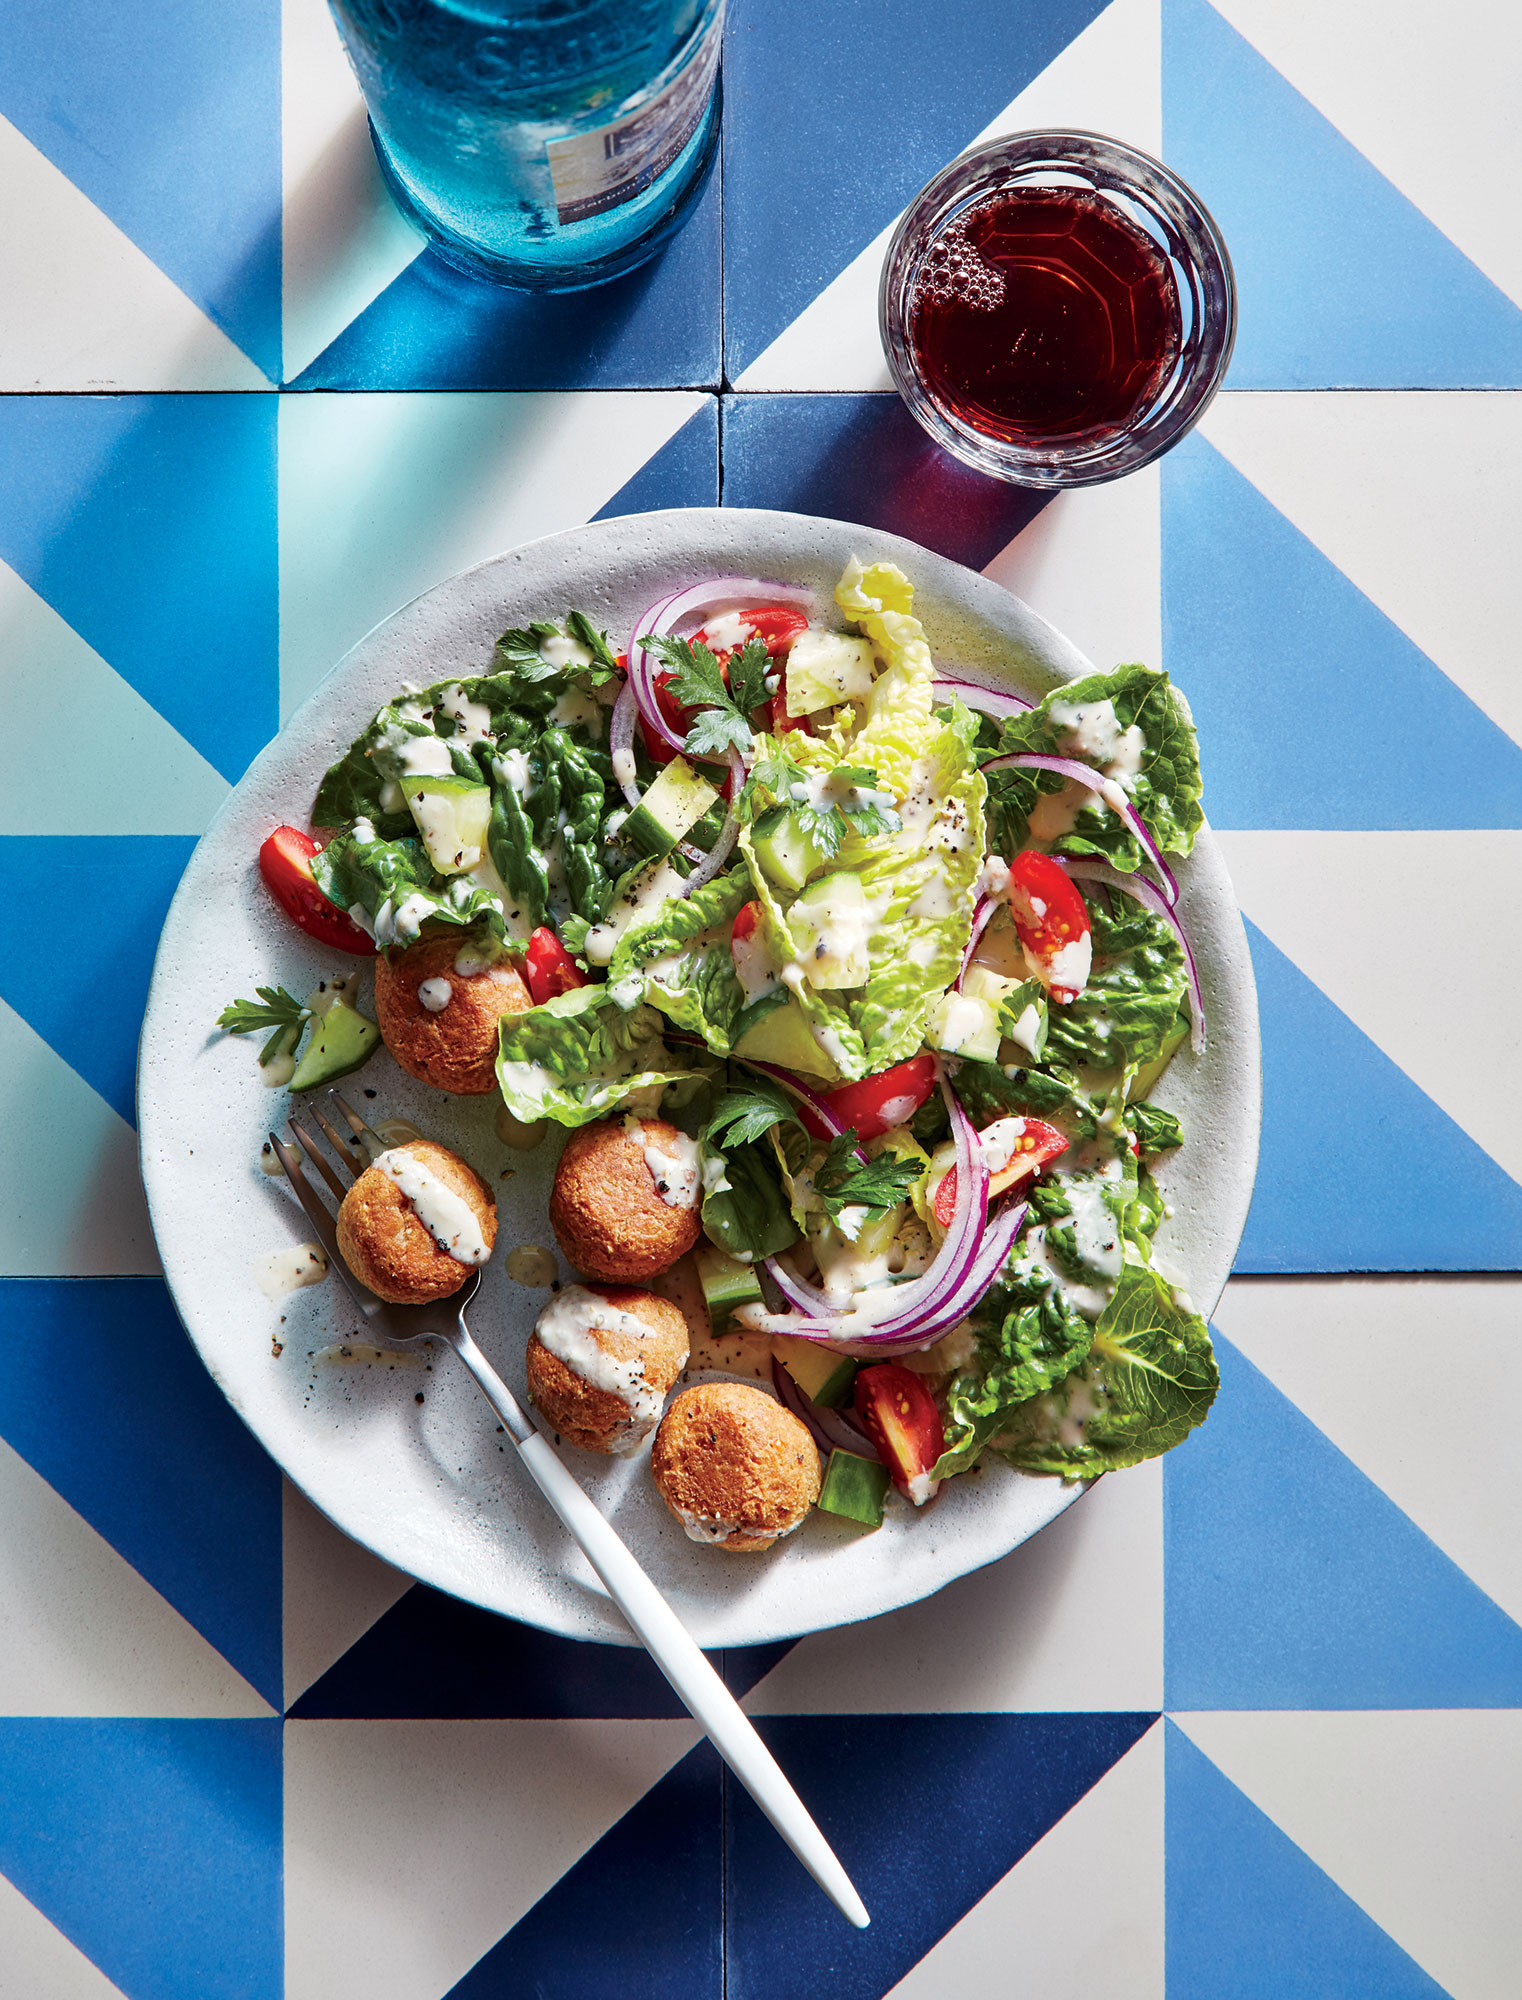 ck-Chickpea  Meatballs  with Crunchy Romaine Salad